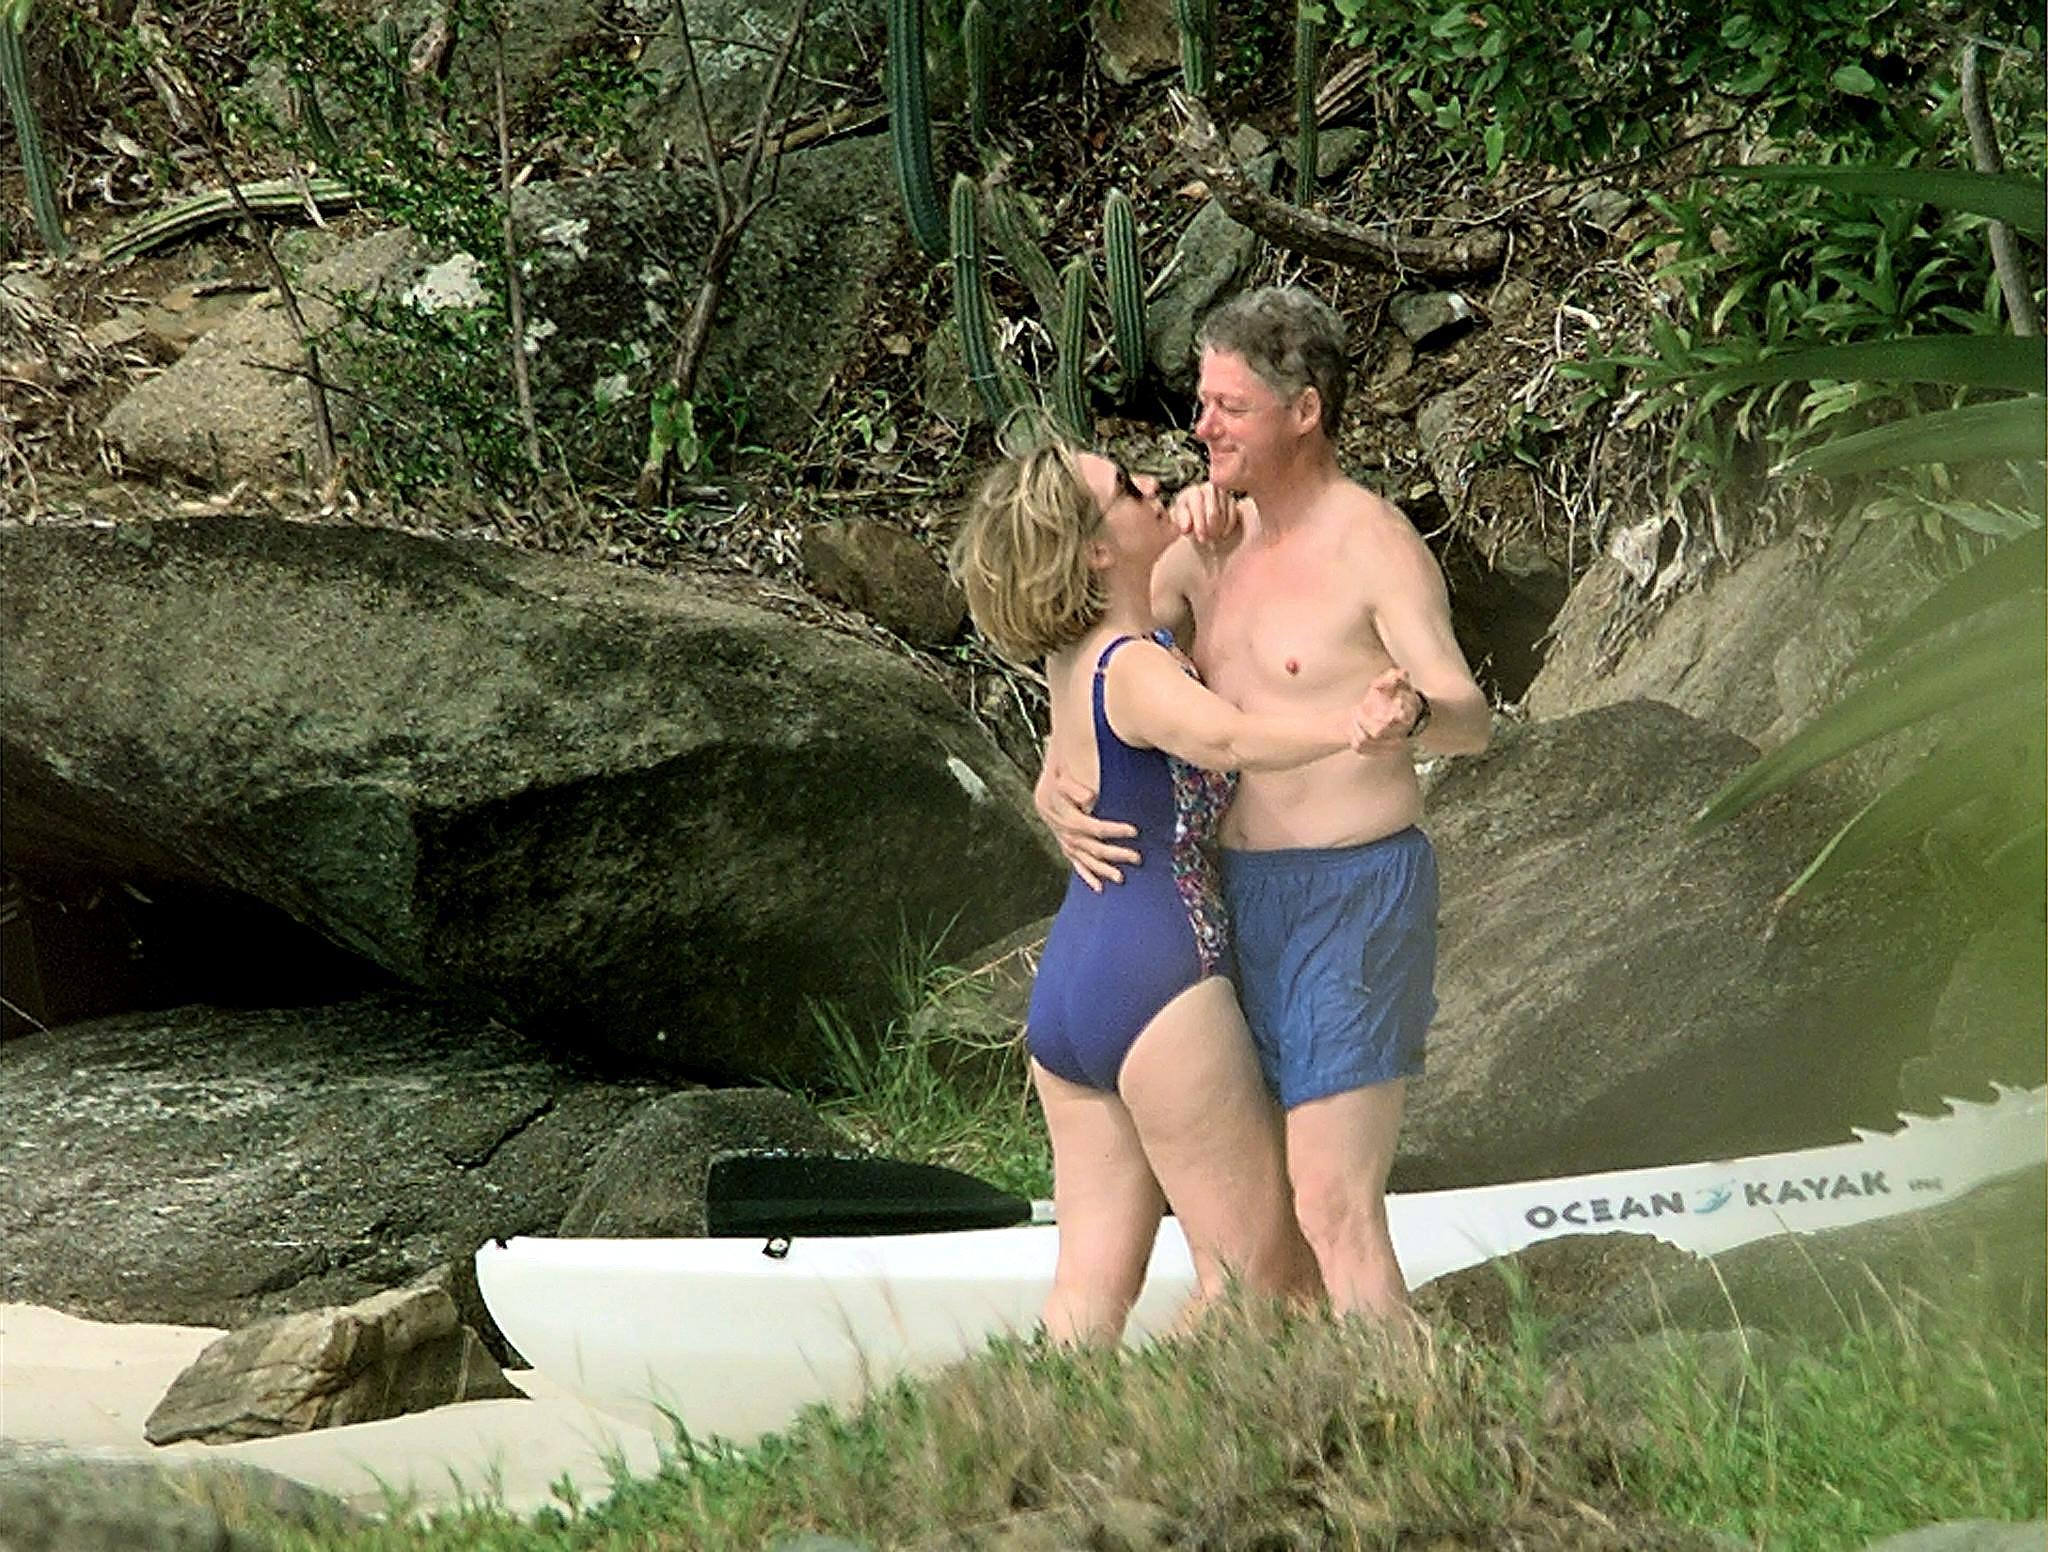 President Bill Clinton and First Lady Hillary Clinton dance on the beach of Megan Bay, St. Thomas, U.S. Virgin Islands shortly after taking a swim on Jan. 4, 1998.